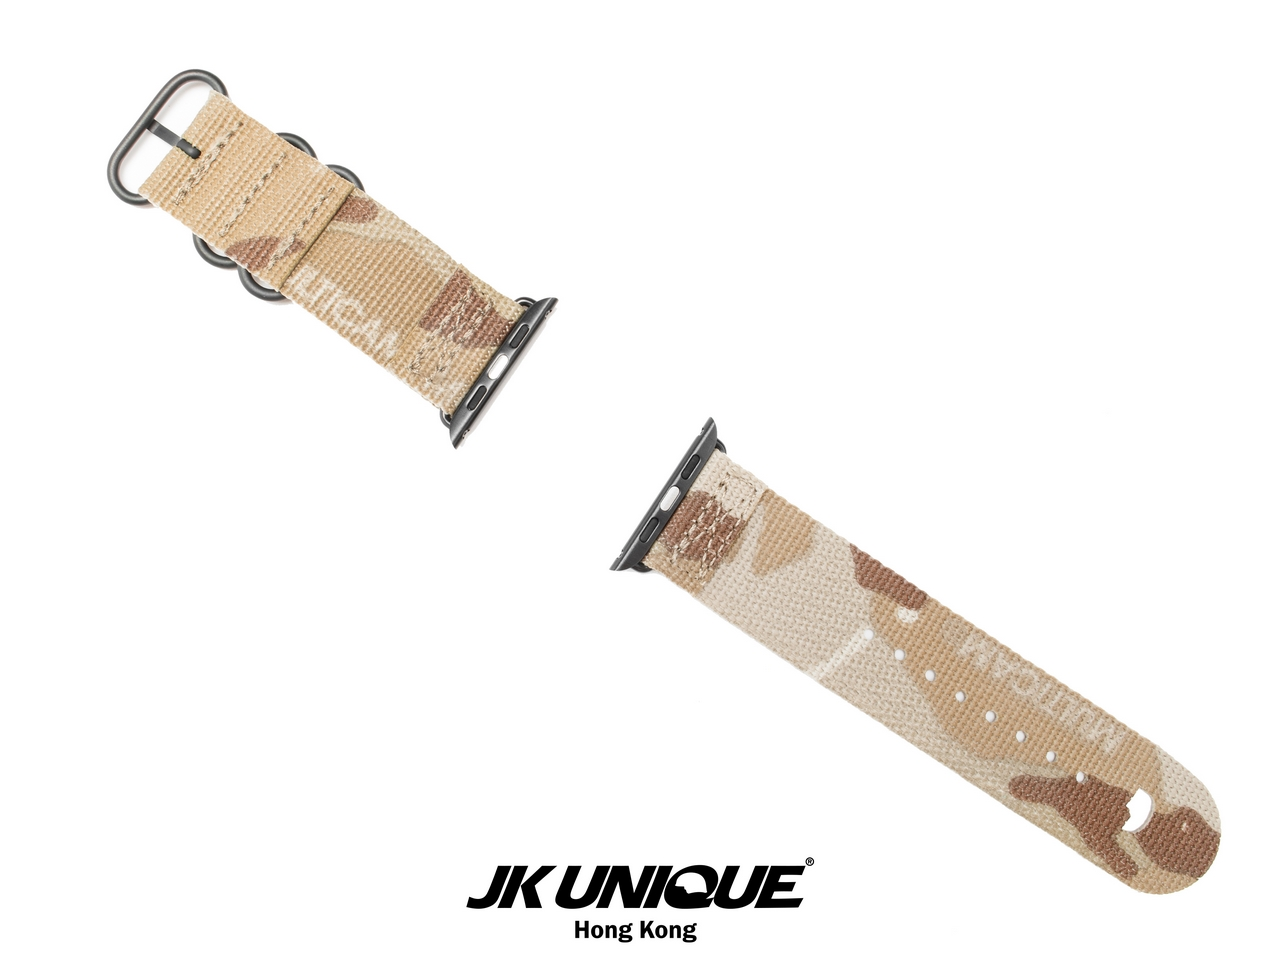 JK-UNIQUE-CAMO-NATO-Apple-Watch-Strap-42mm-BK-Multicam-Arid-2 (1280).jpg